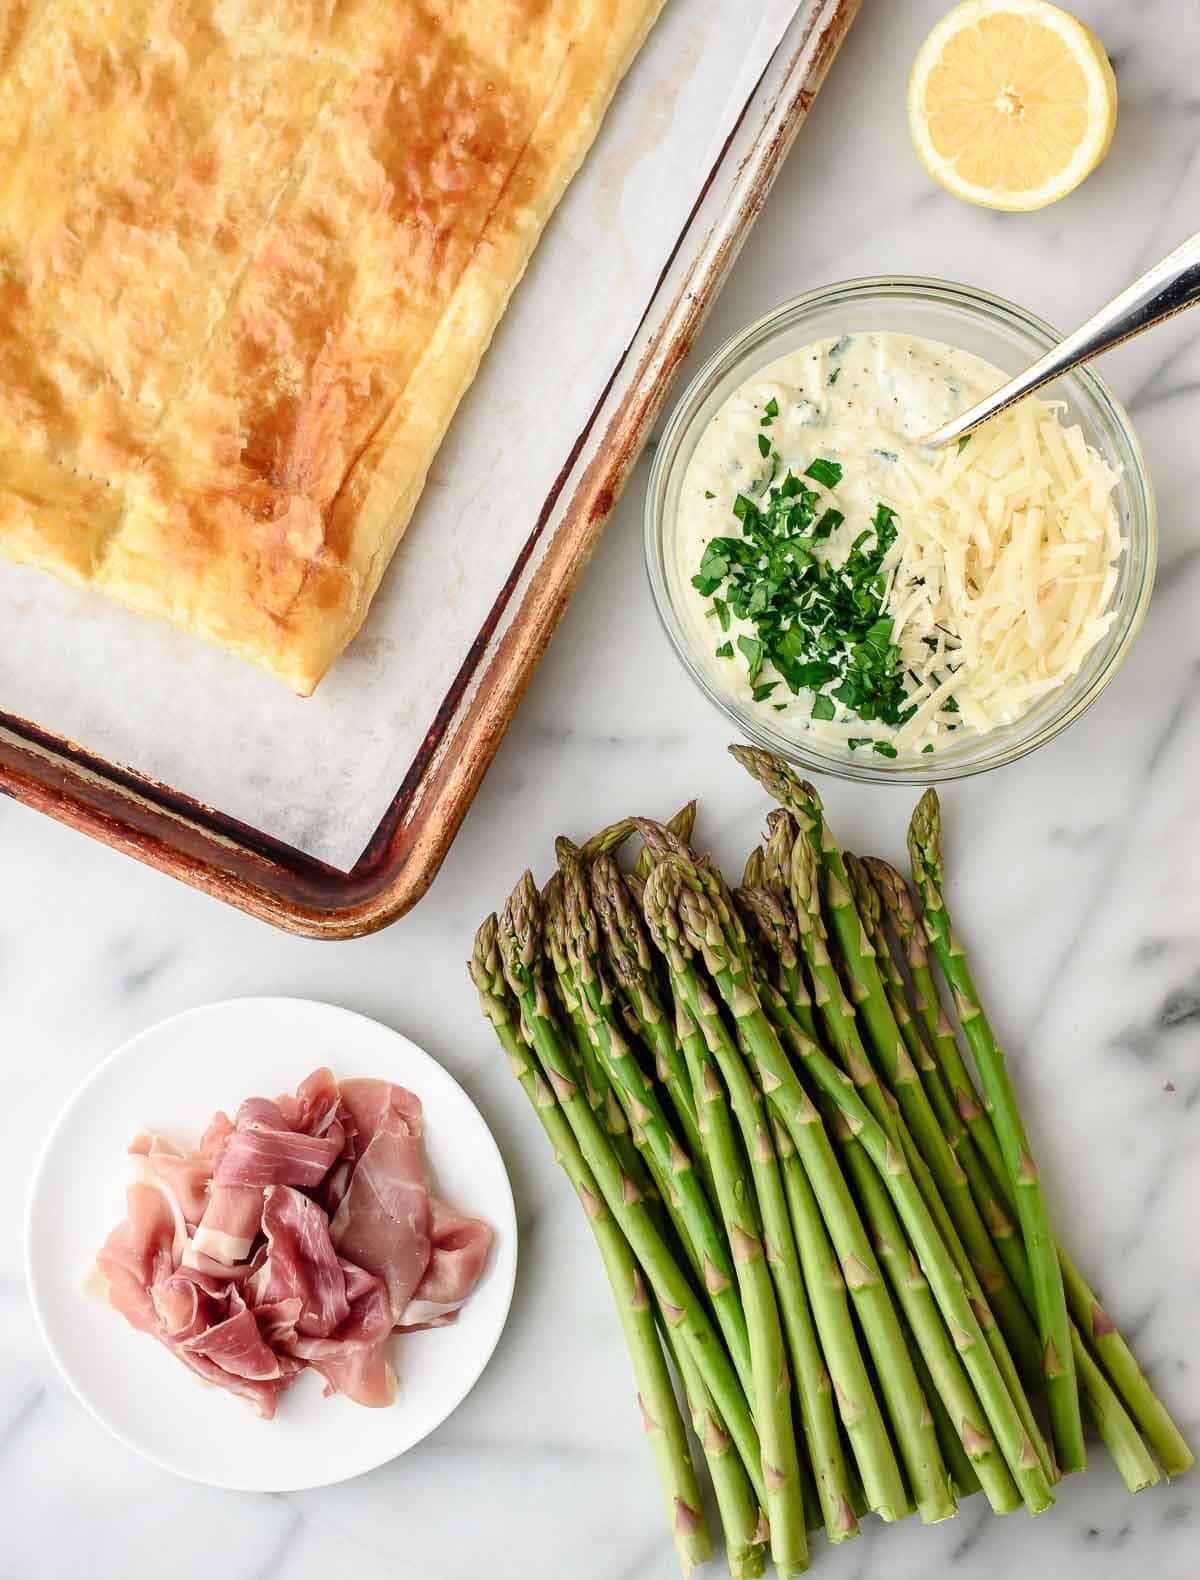 An EASY Asparagus Tart with ricotta cheese, puff pastry, and prosciutto. Perfect for an appetizer, brunch or light dinner! @wellplated